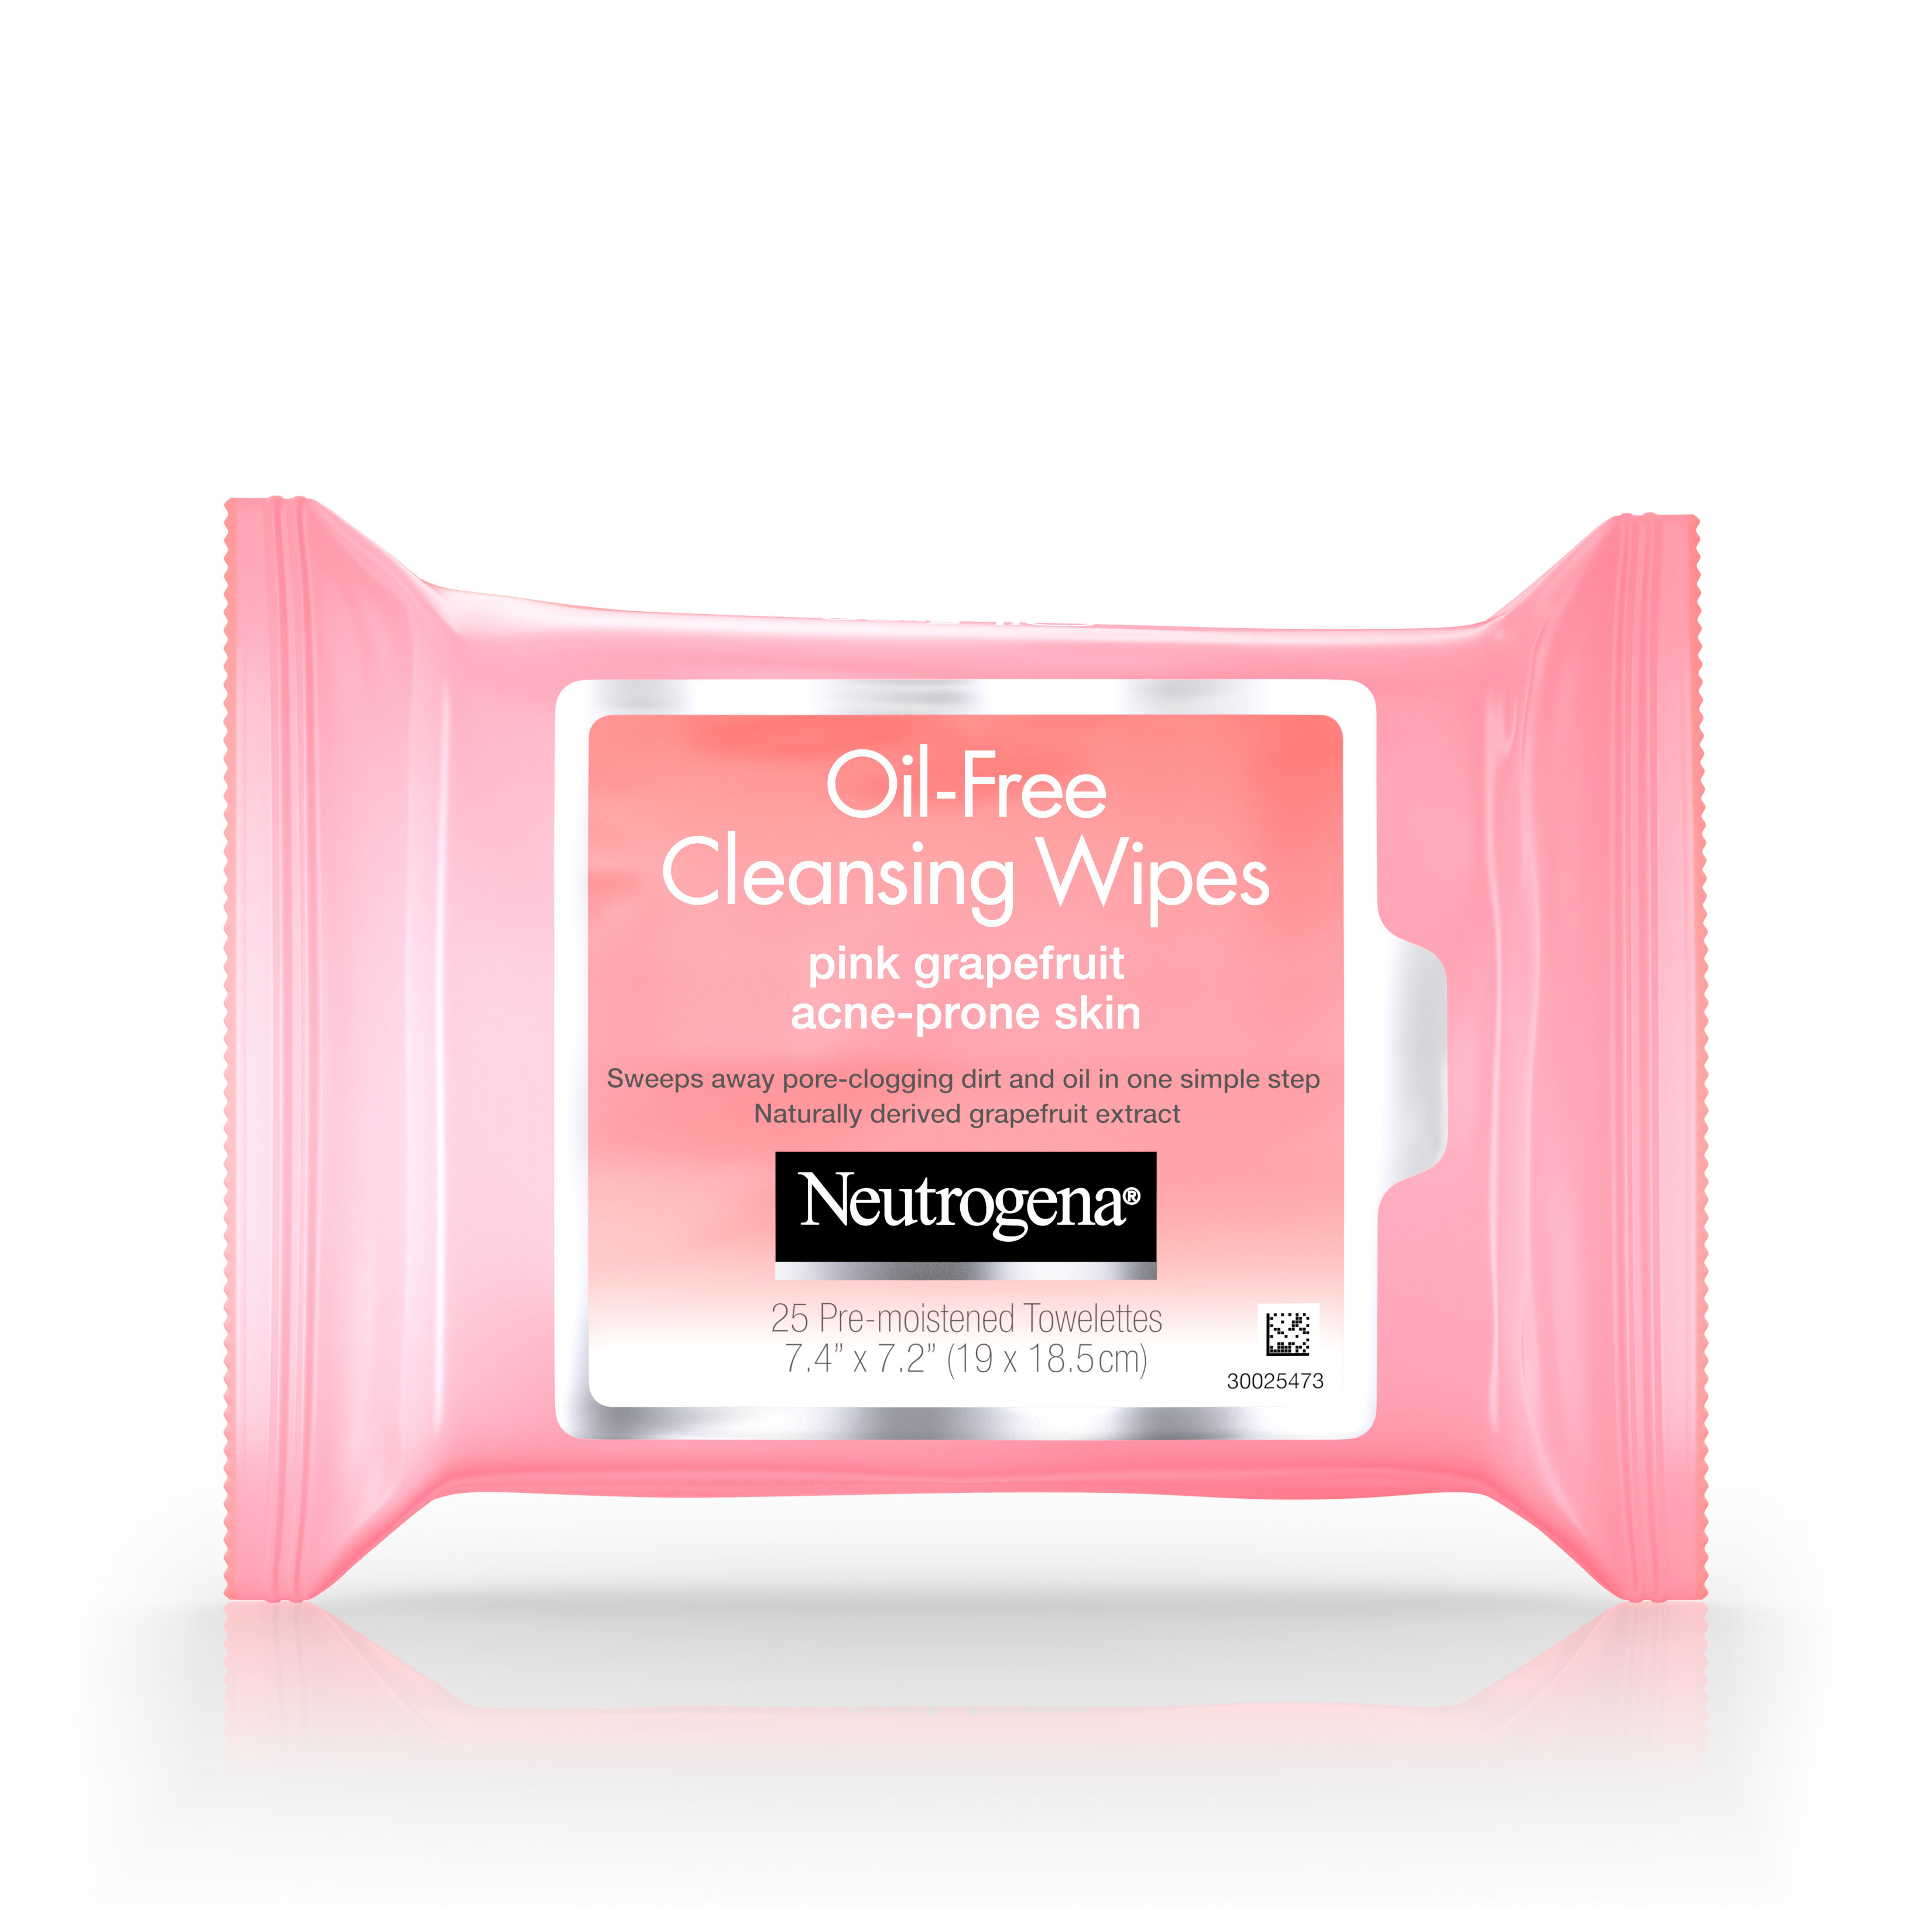 4 Pack - Neutrogena Oil-Free Cleansing Wipes Pink Grapefruit 25 Wipes Each Neutrogena Rapid Clear Acne Defense Face Lotion 1.70 oz (Pack of 6)